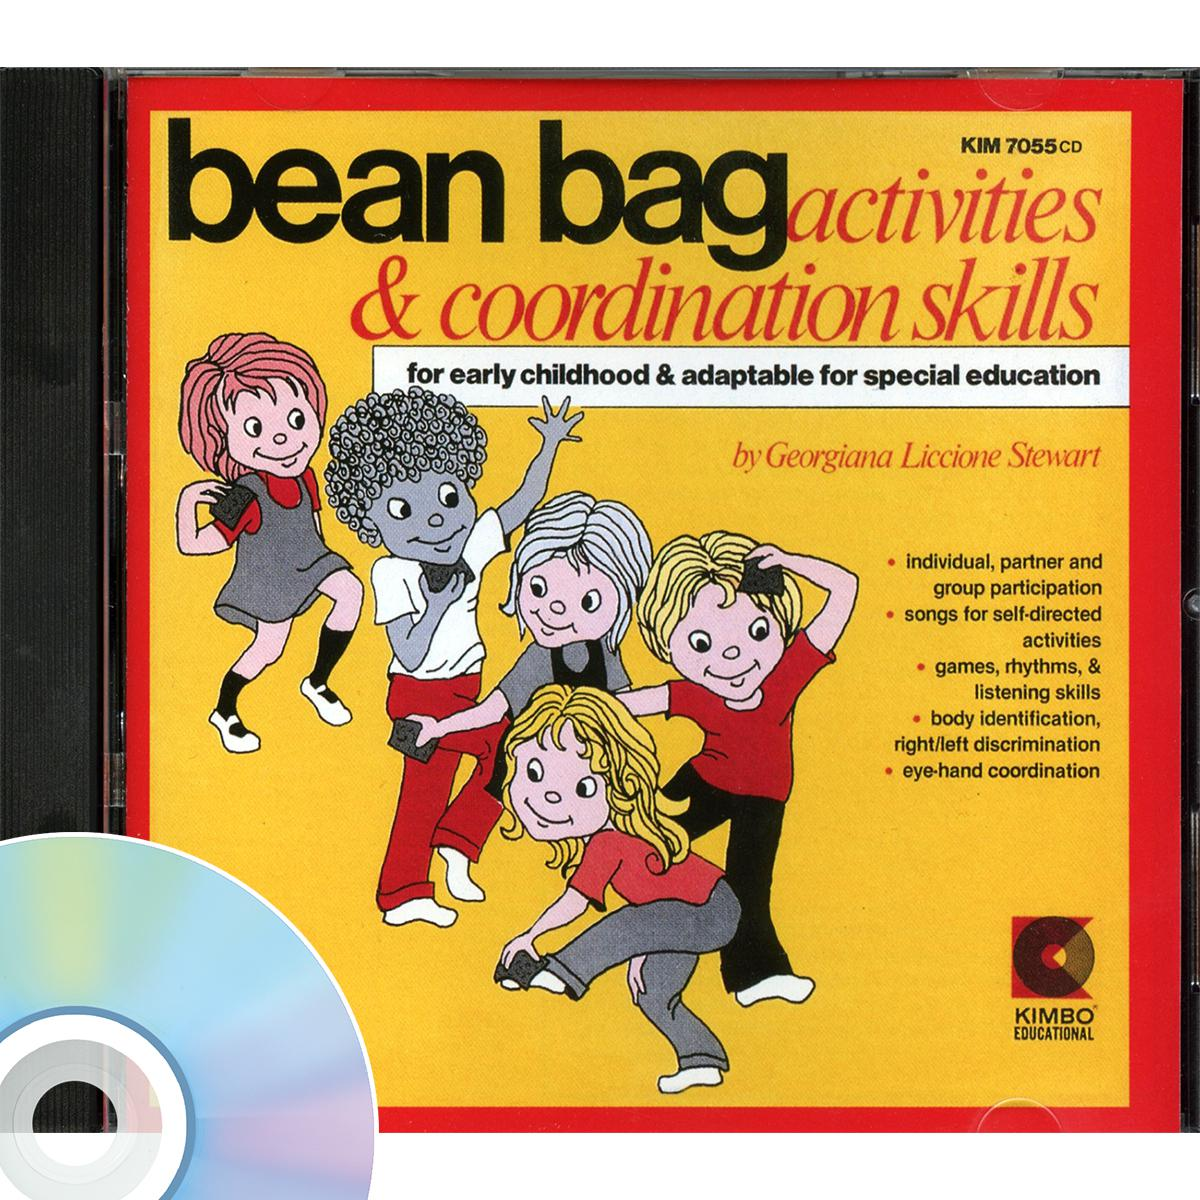 Bean Bag Activities & Coordination Skills CD